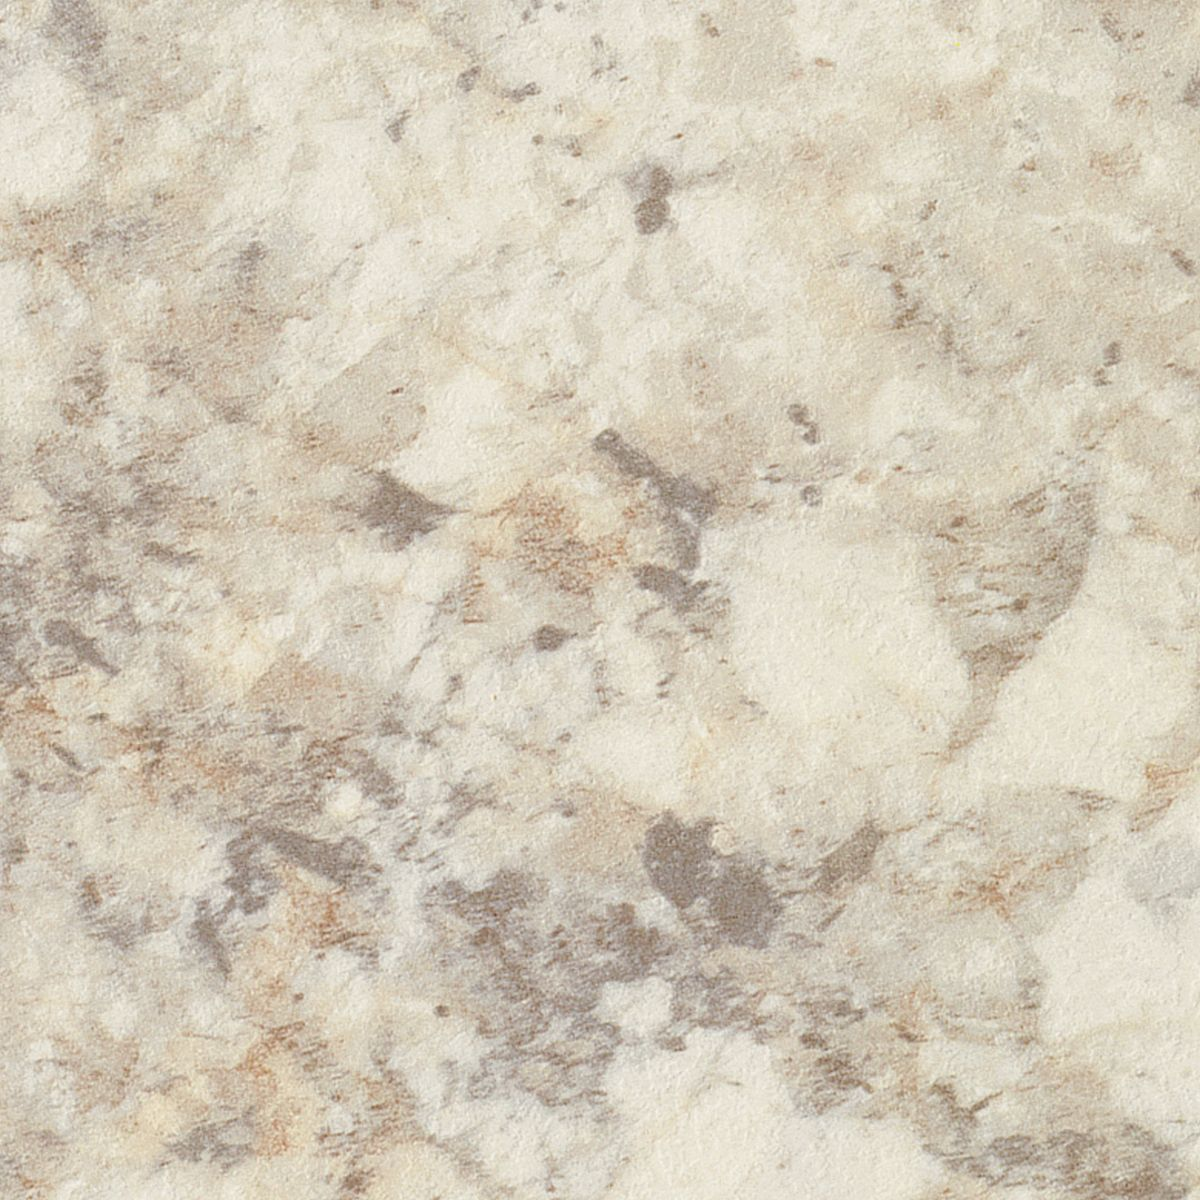 Formica Laminate Kitchen Countertops : formica kitchen countertops countertop decor countertop options ...